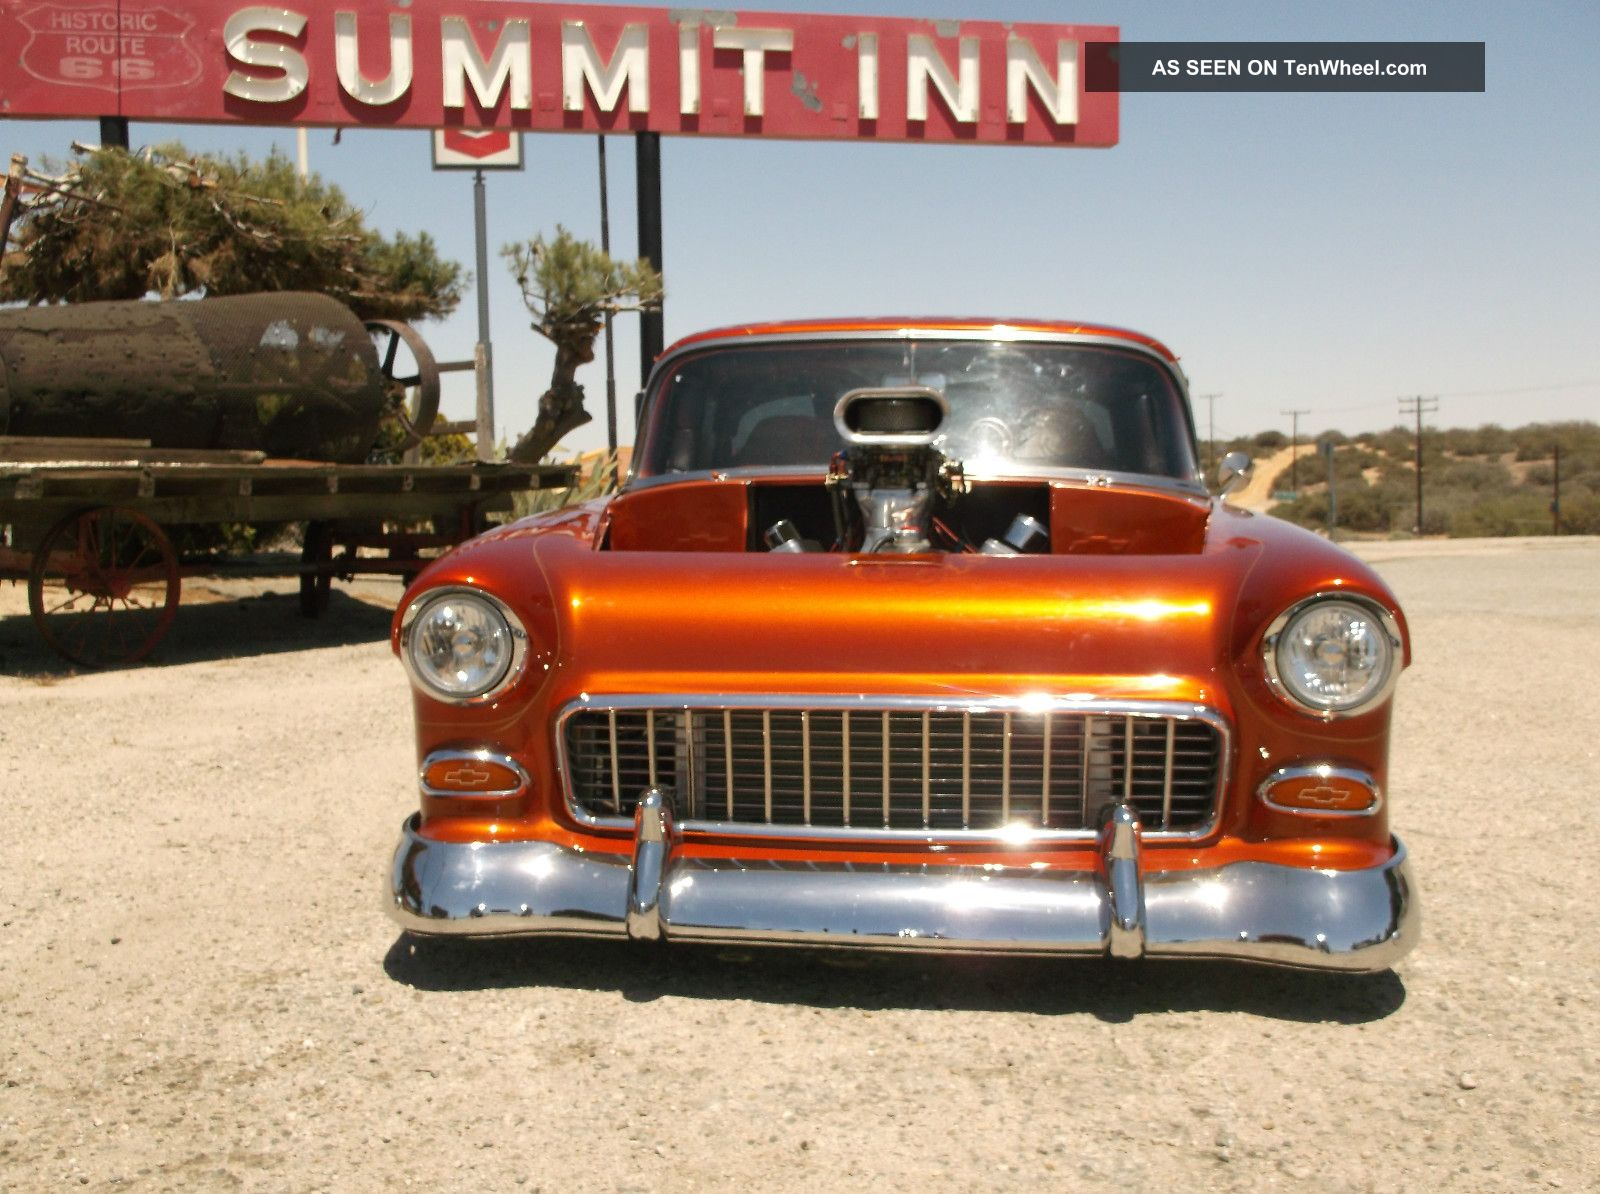 1955 Chevy Bel Air Pro Street Rod Custom Paint Flames Ford F100 Built 468 Cu In